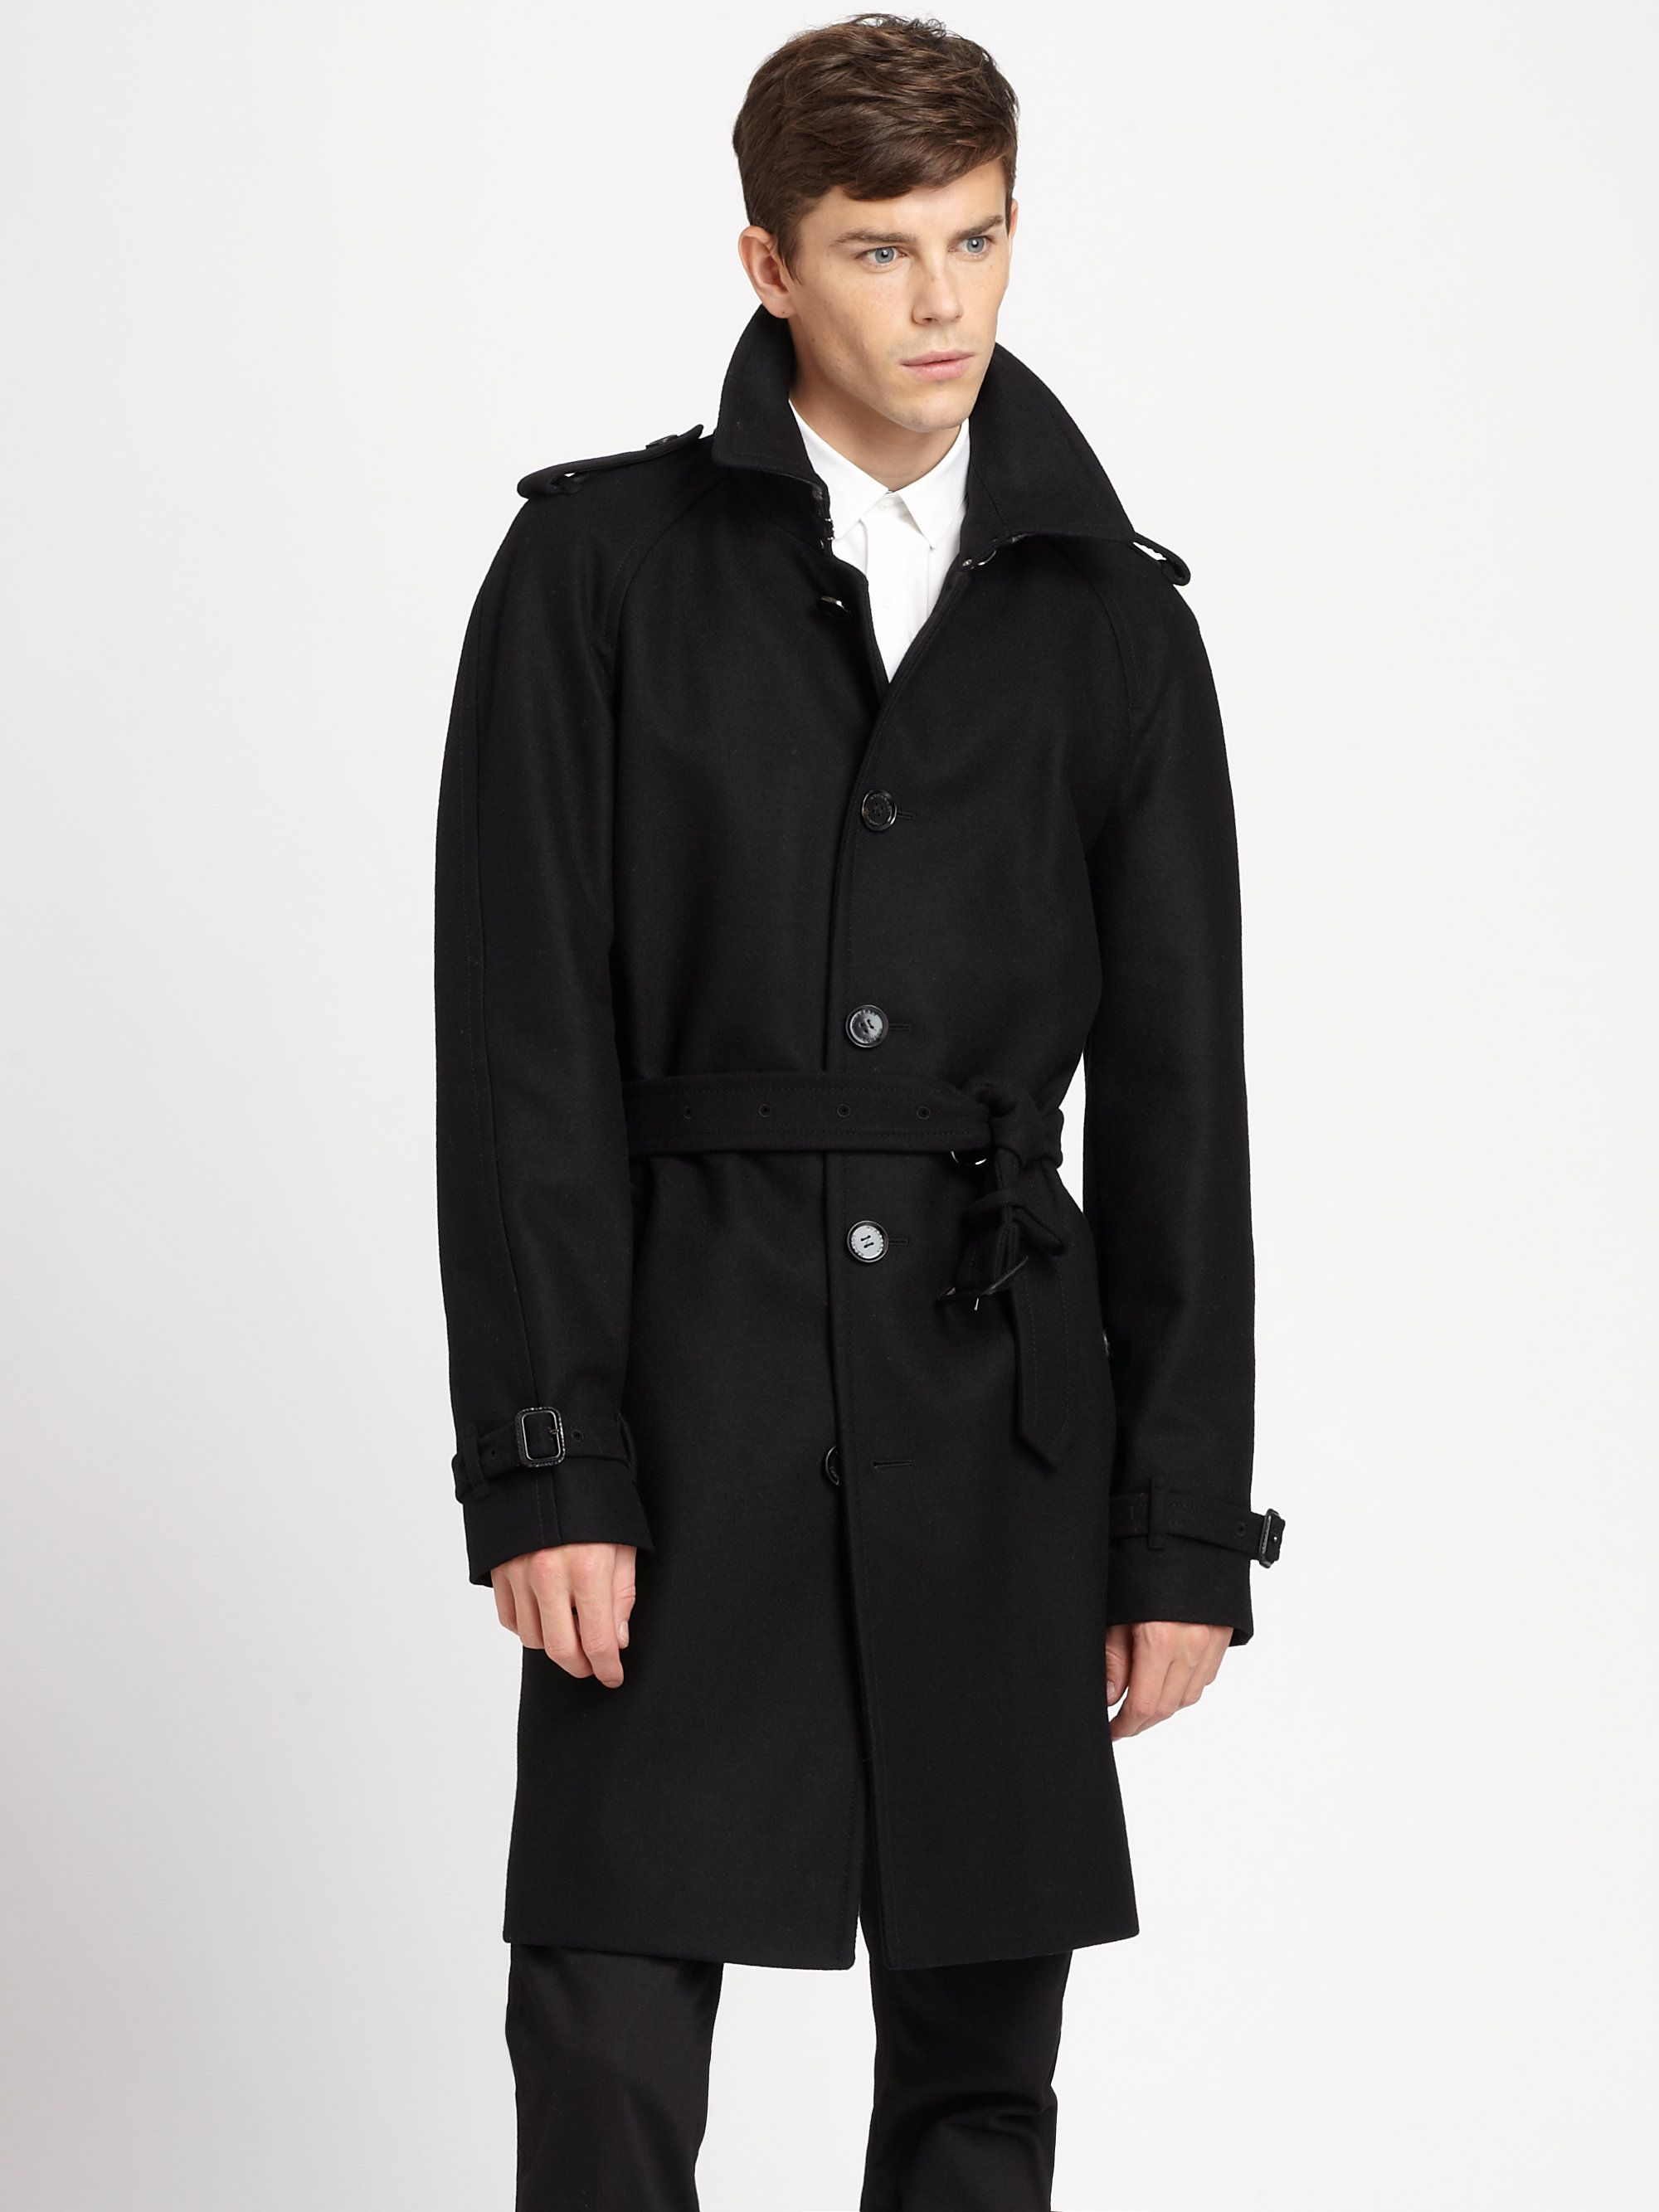 Burberry Wool Single Breasted Trench Coat In Black For Men Burberry Trench Coat Wool Single Br Trench Coat Outfit Spring Trench Coat Outfit Trench Coat